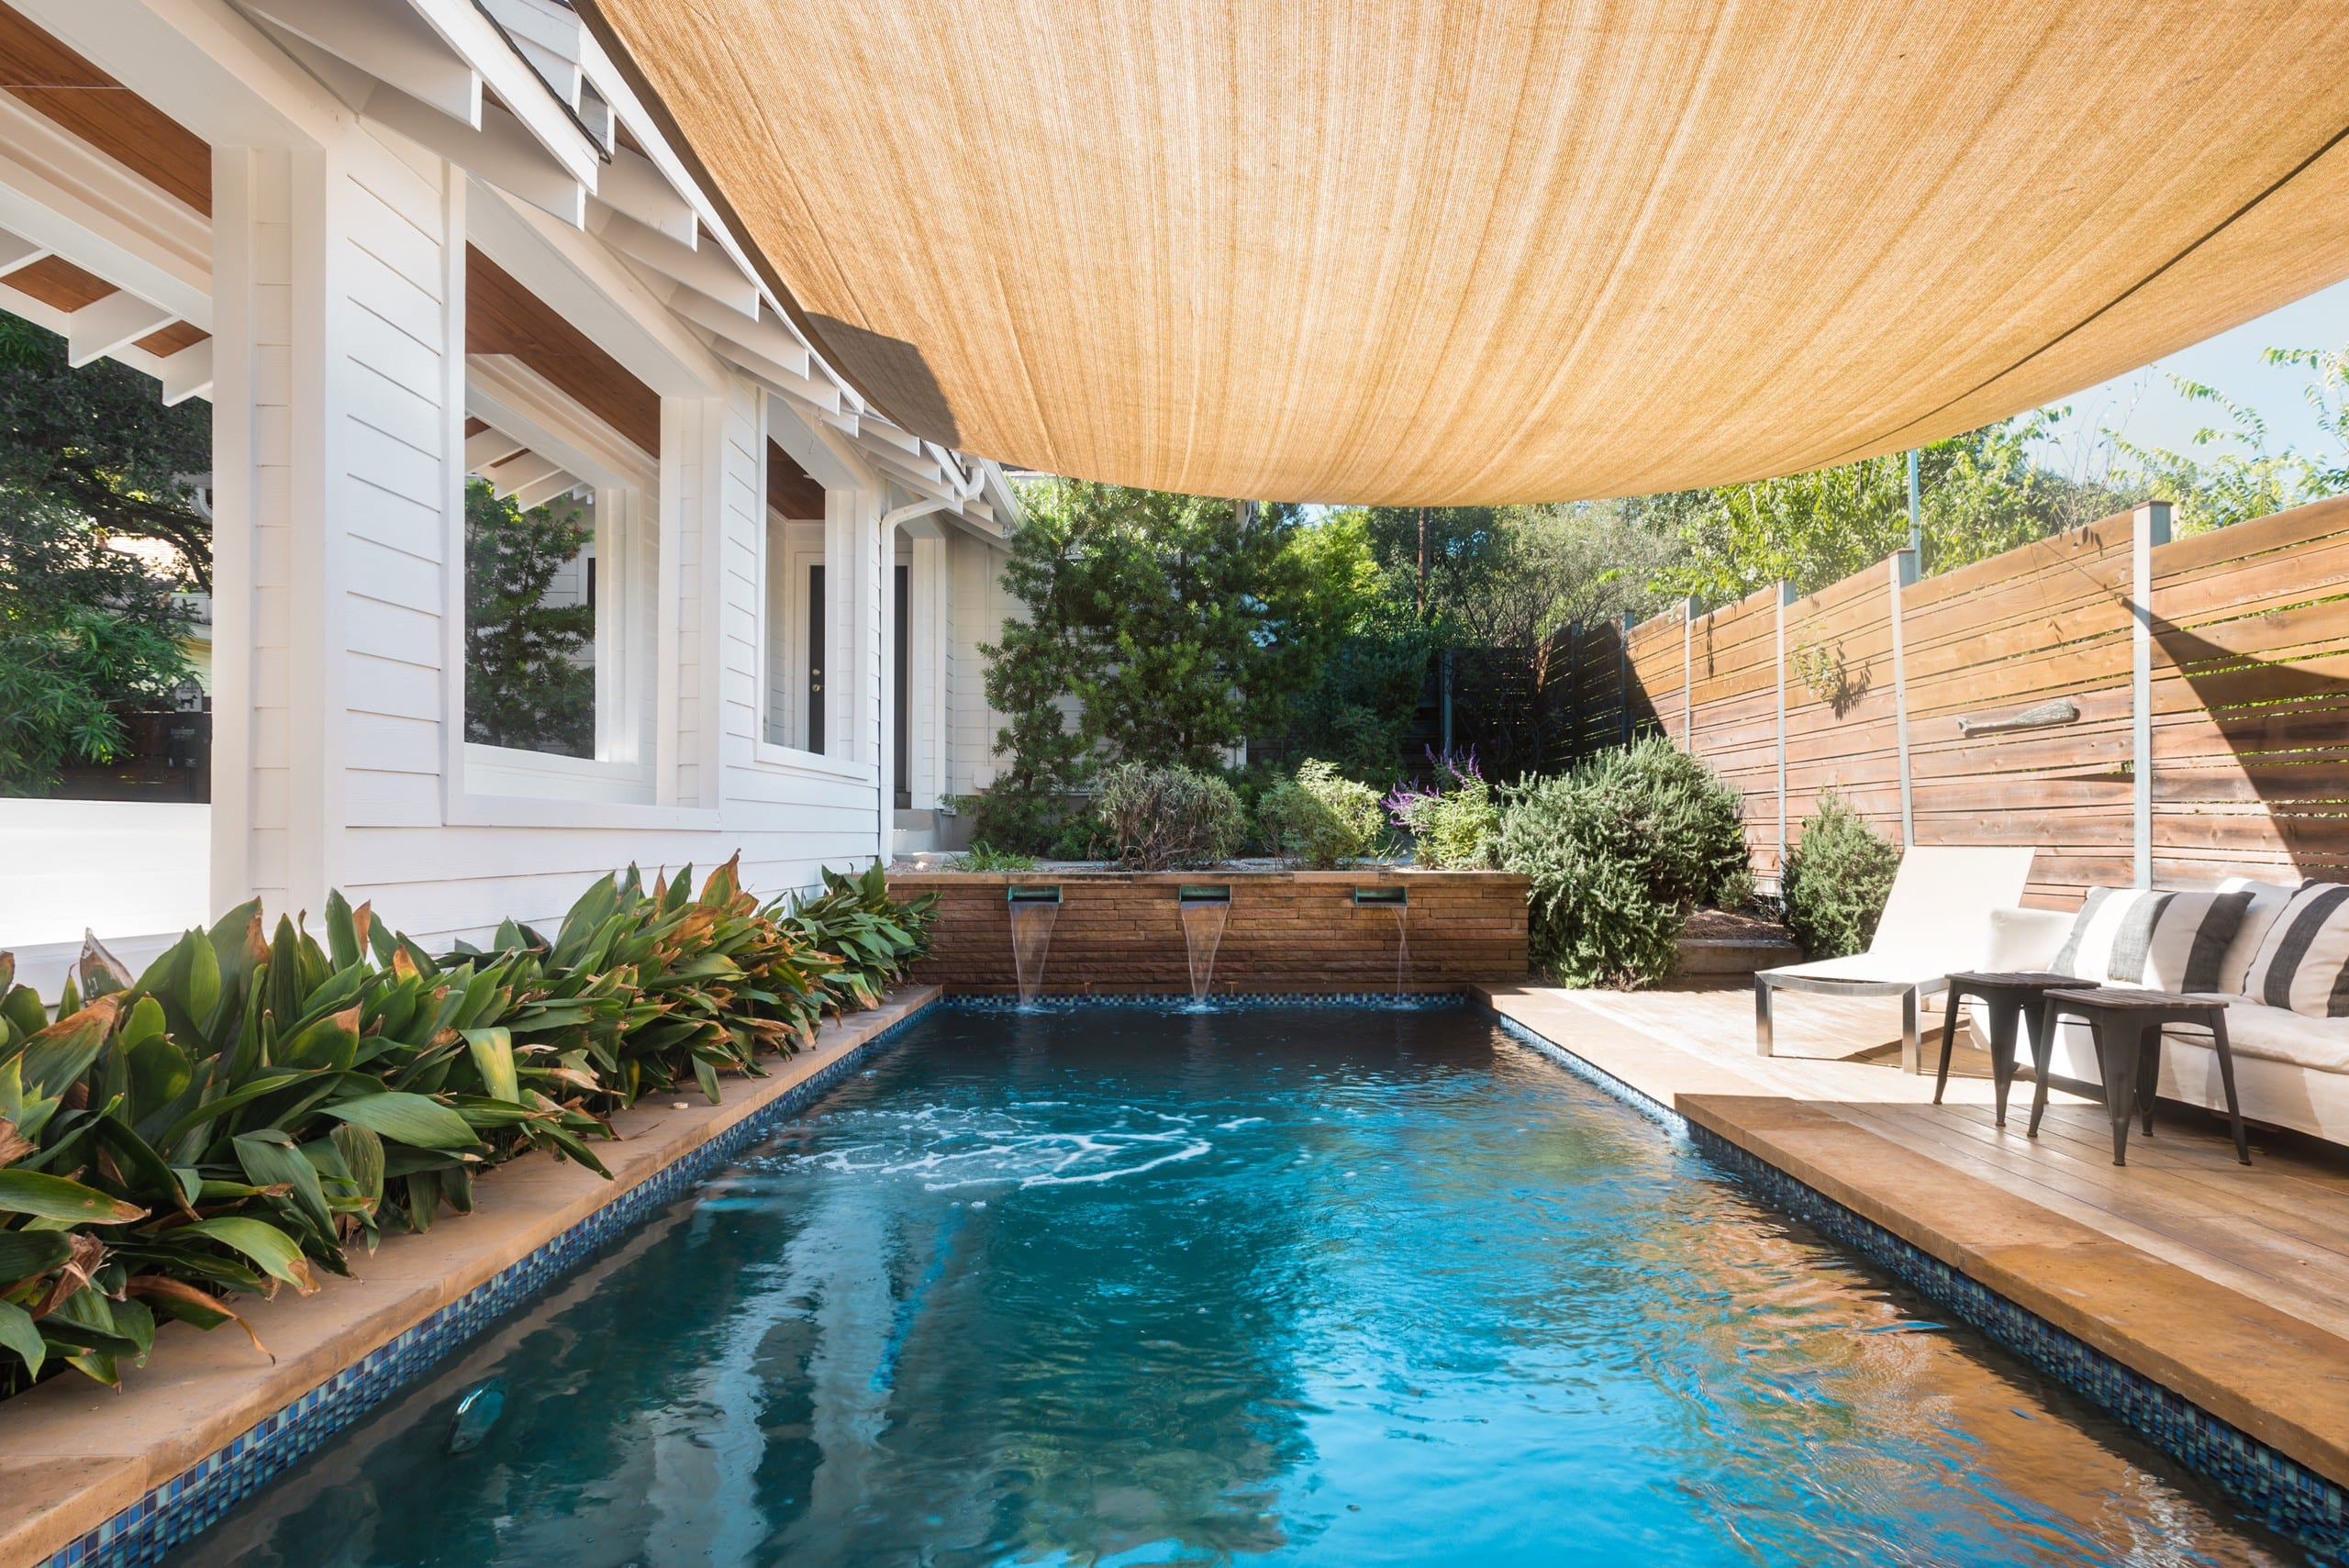 Take In A Dip In The Heated Pool At A Luxury Soco Retreat Houses For Rent In Austin Texas United States